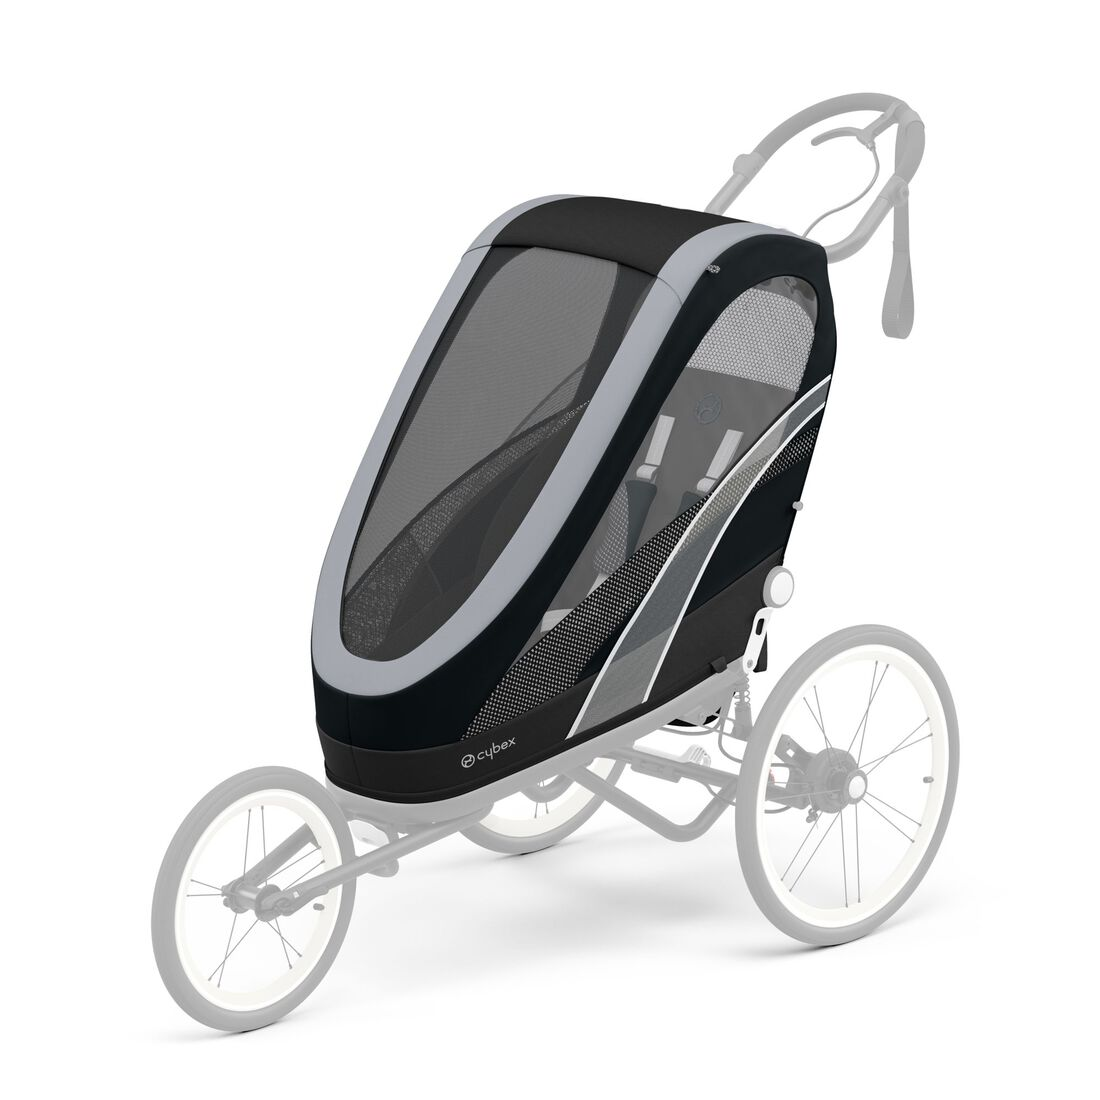 CYBEX Zeno One Box - All Black in All Black large image number 3